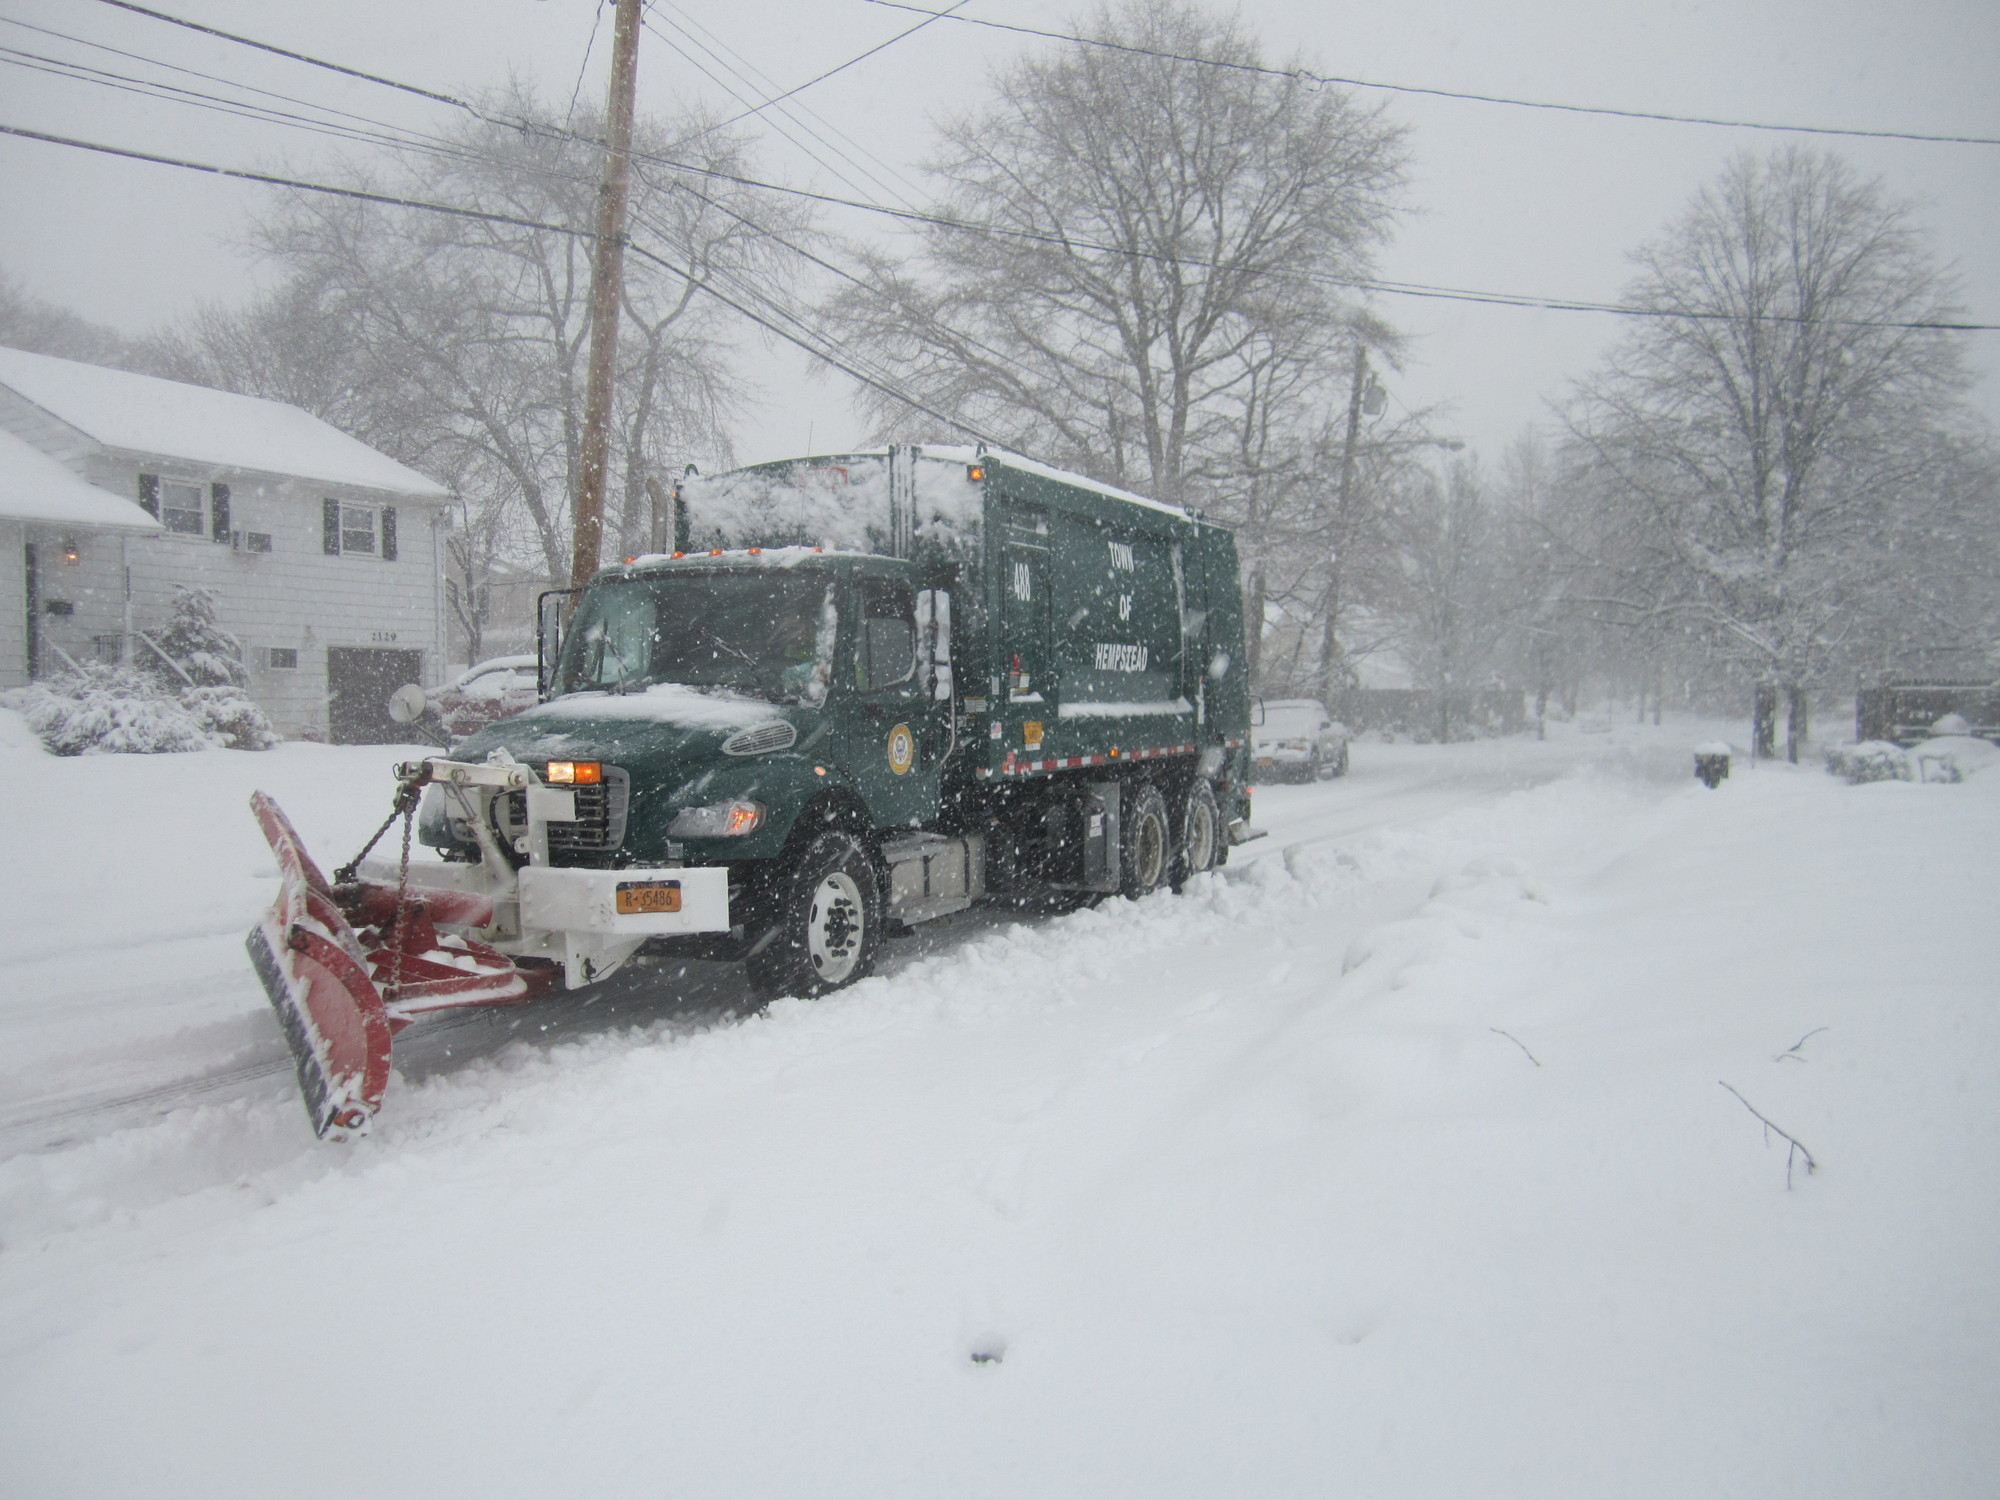 Town plowing crews are expected to work into the night Thursday, as officials said the latest winter storm is not expected to end until 5 a.m. on Friday.